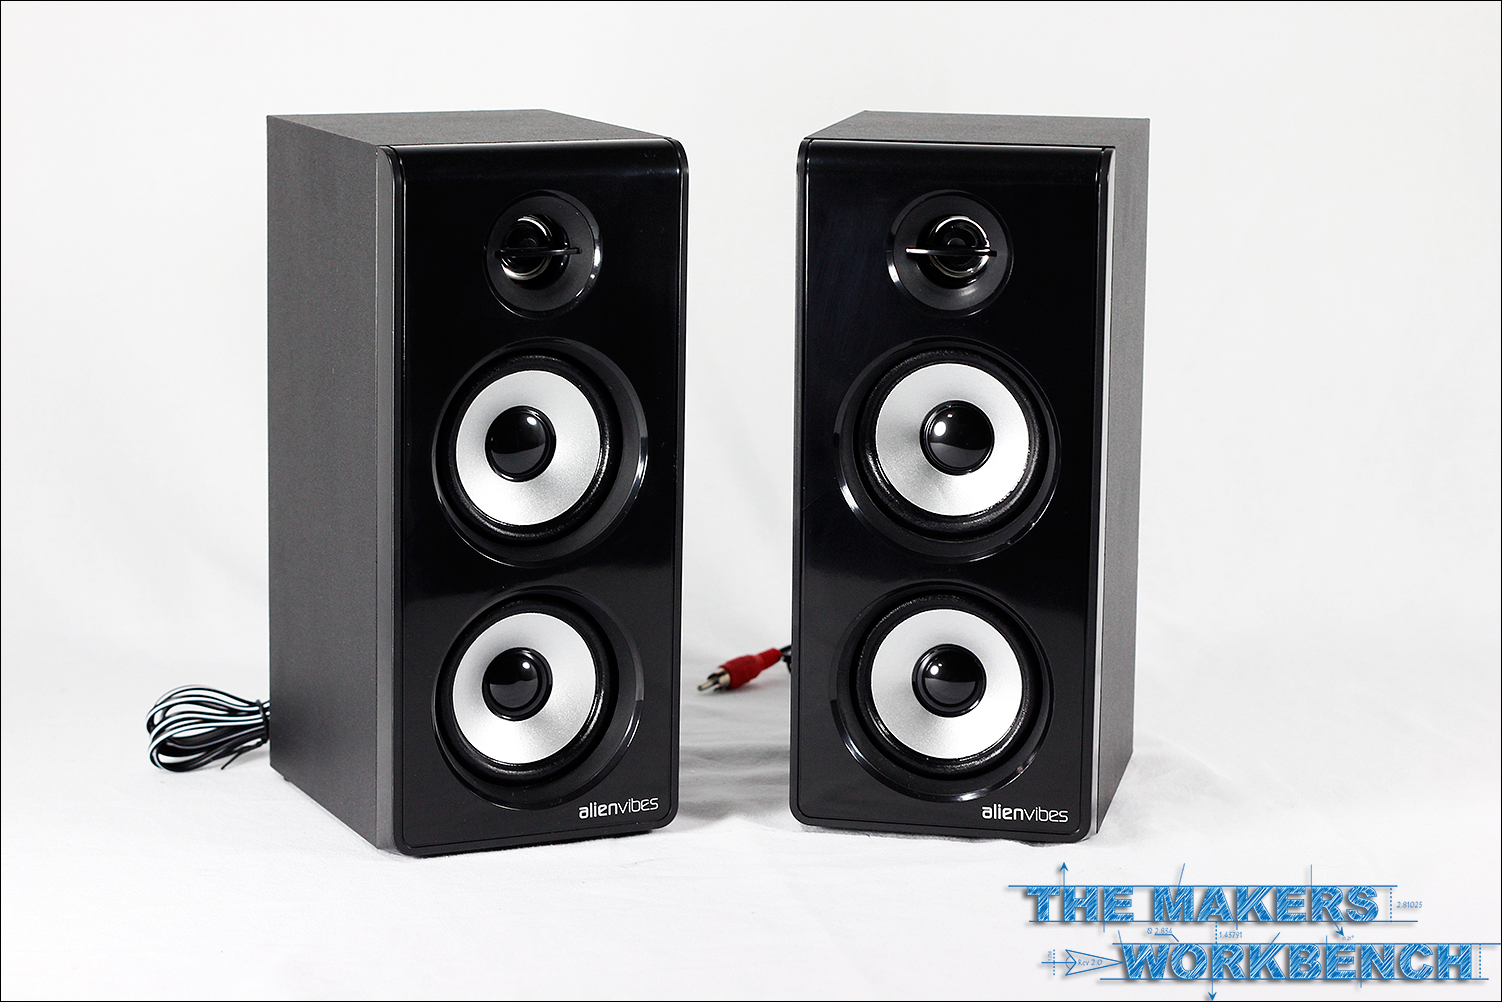 AlievVibes W402 Satellite Speakers Review